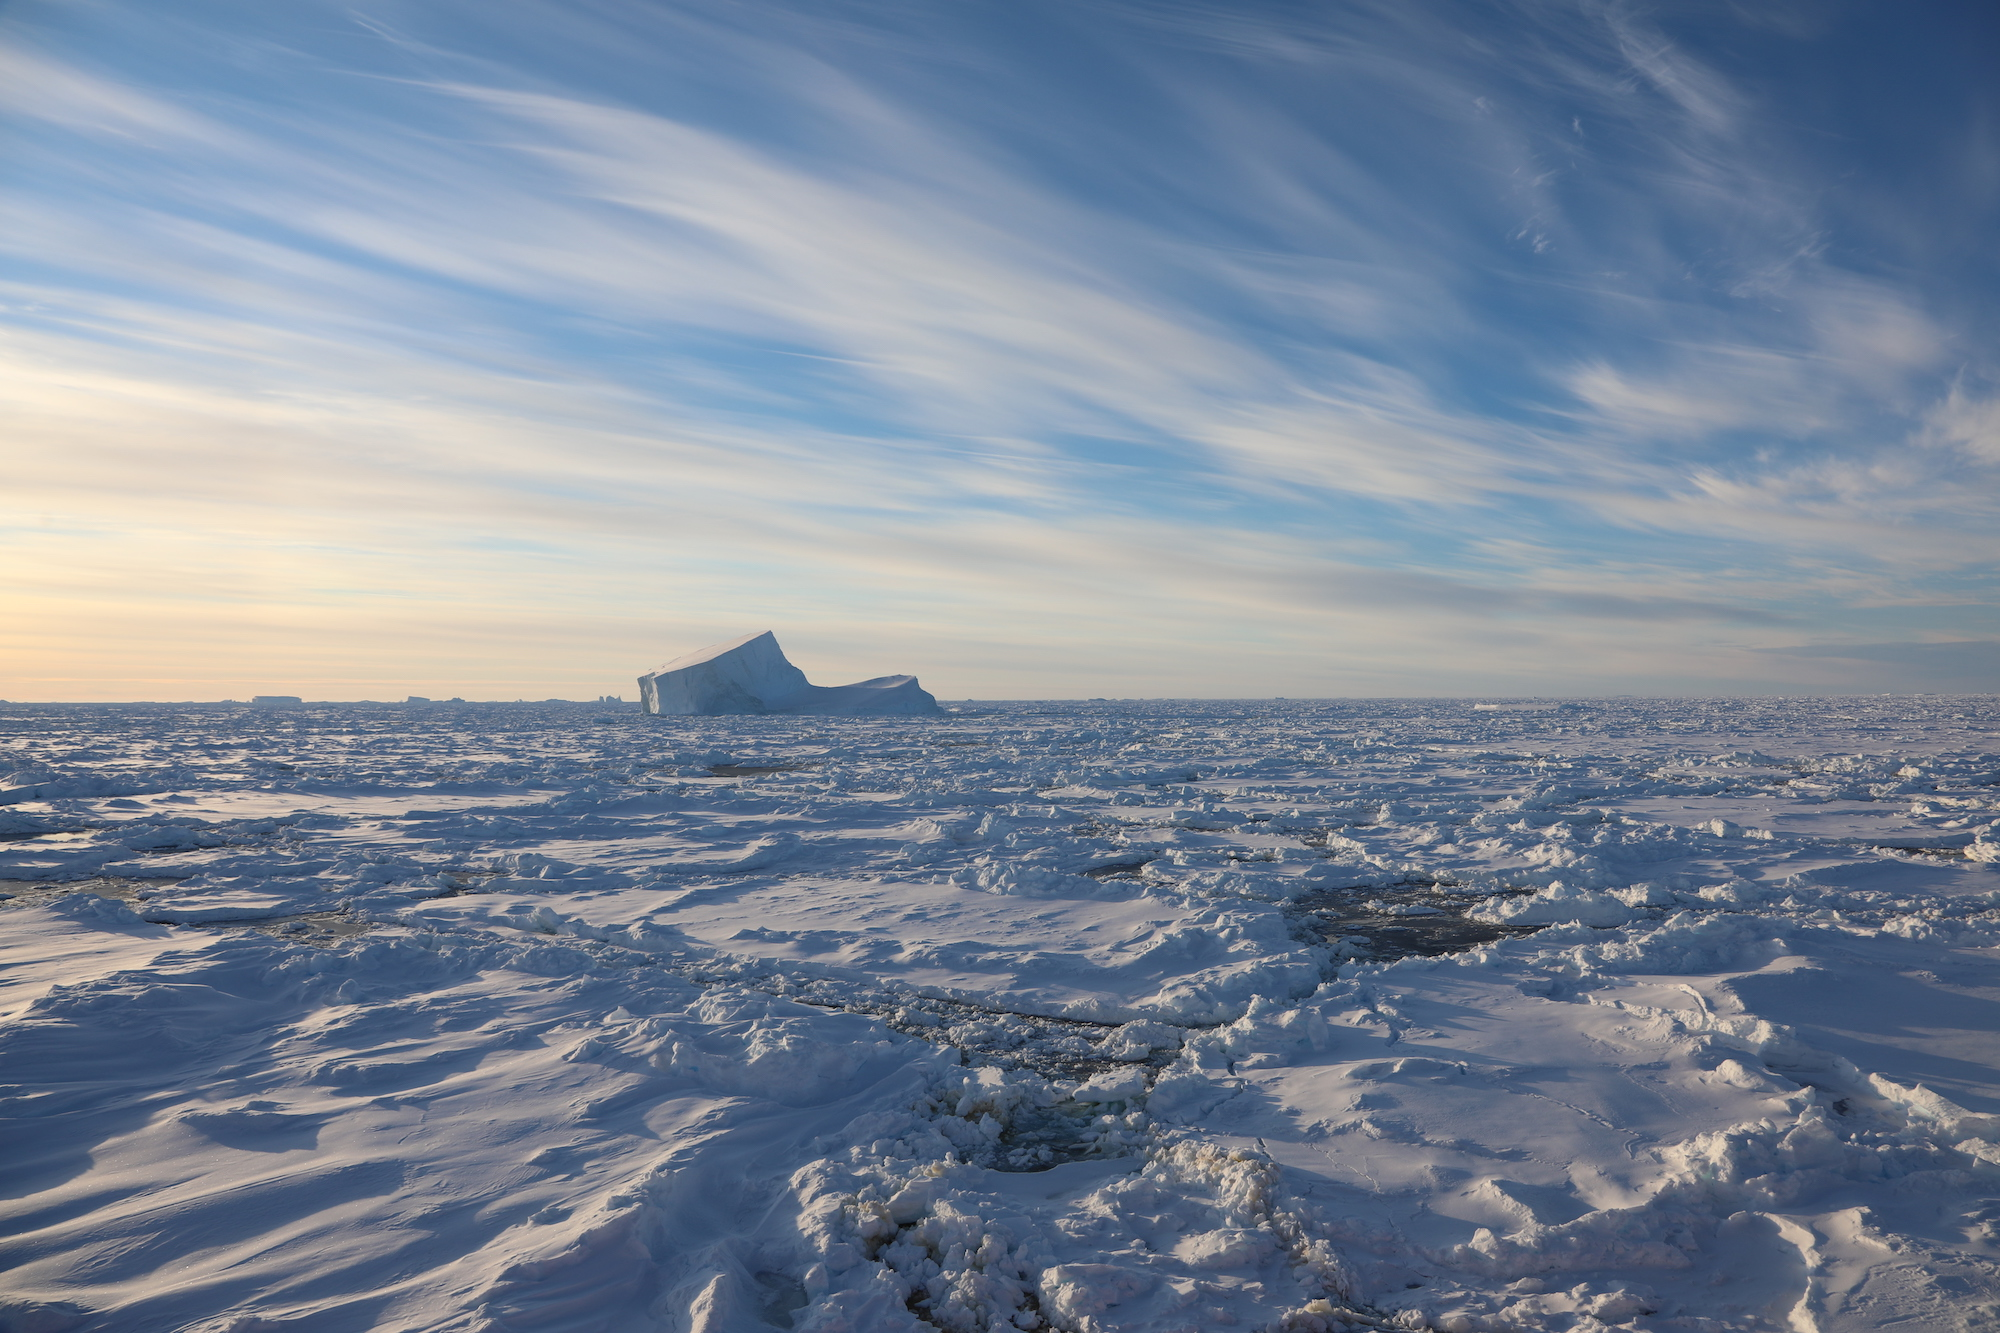 Sea ice (foreground) with an iceberg protruding and more bergs on the horizon.